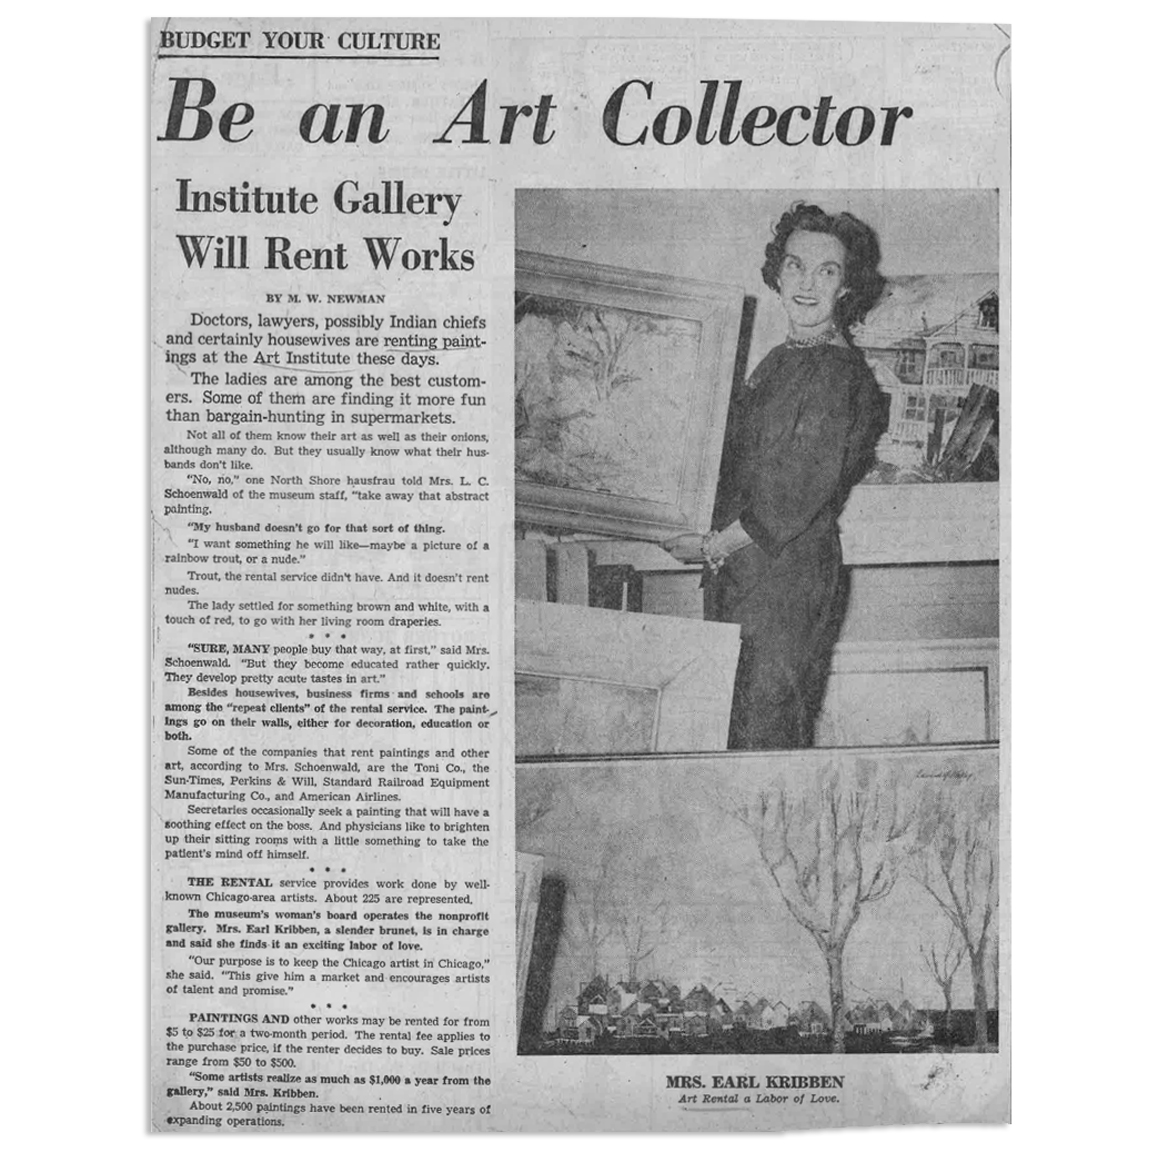 The women who helped run the Art Institute's rental program were often referred to by their husbands' names in newspaper reports. For example, this March 1959 story in the Chicago Daily News features a photo of Mrs. Earl Kribben, who helped lead the Art Rental and Sales Gallery. (Photo courtesy Chicago Sun-Times.)